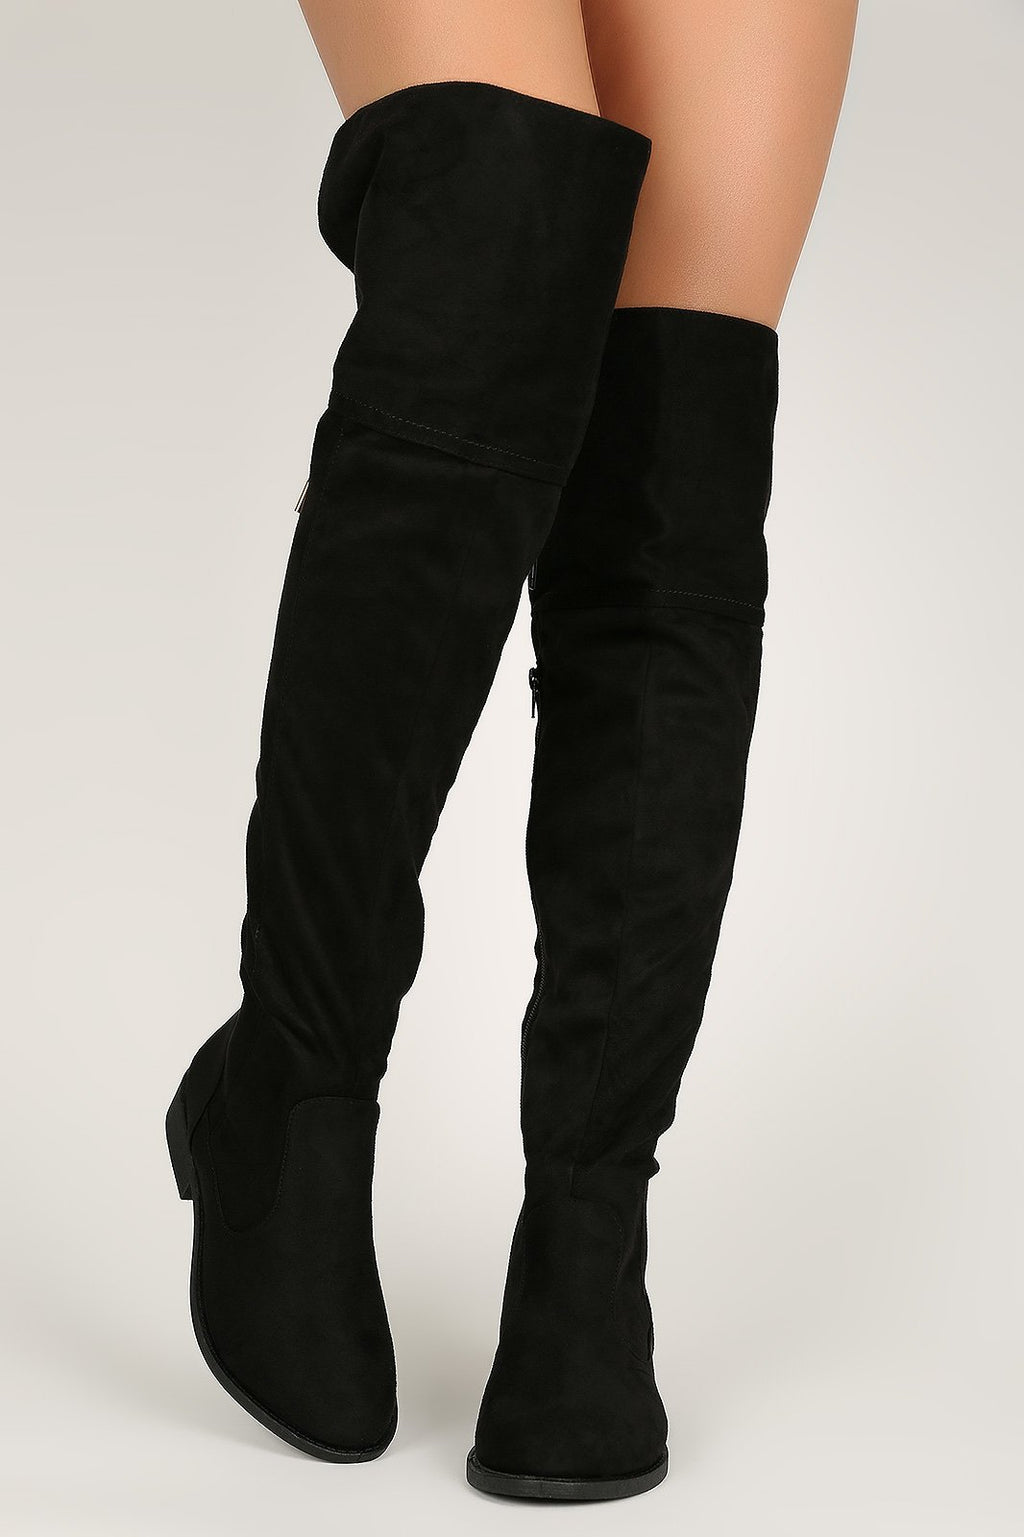 Trendsetter - Black Knee High Boots